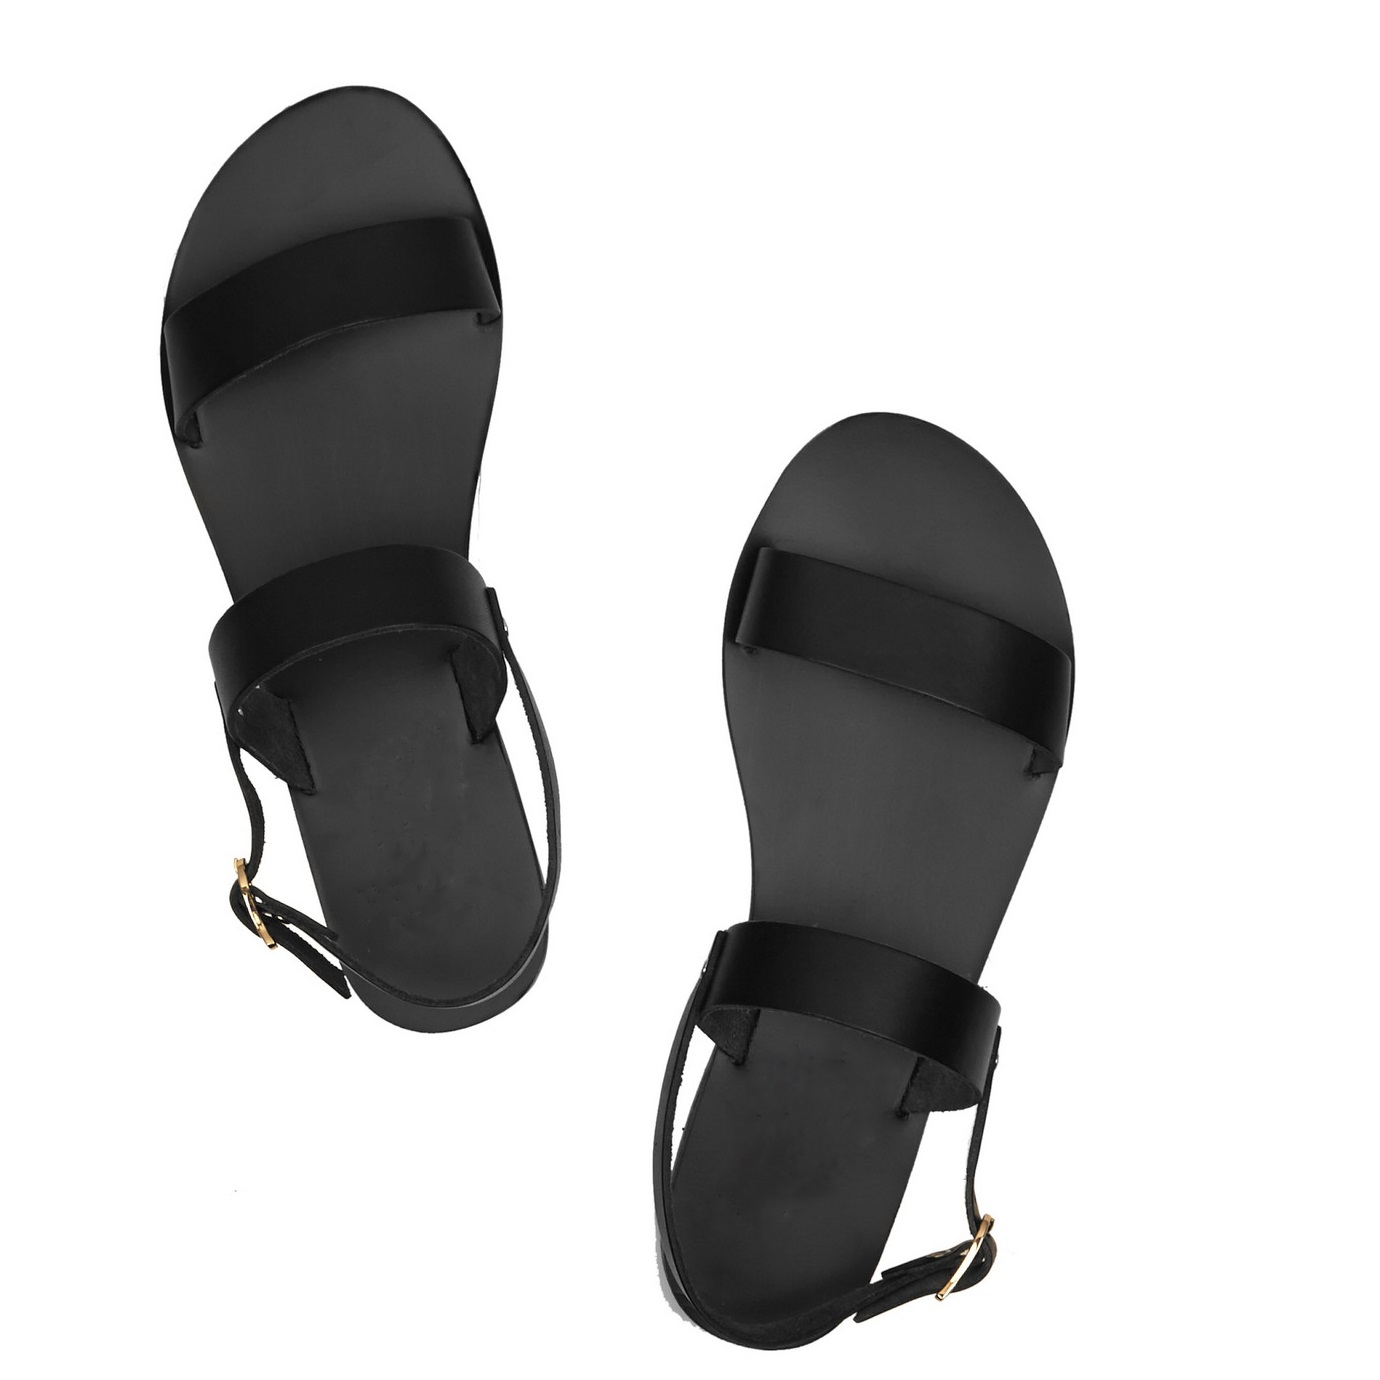 Genuine Leather Classic Design Black EUR 31-46 kids adults Beach Sandals women men summer style Shoes open toed